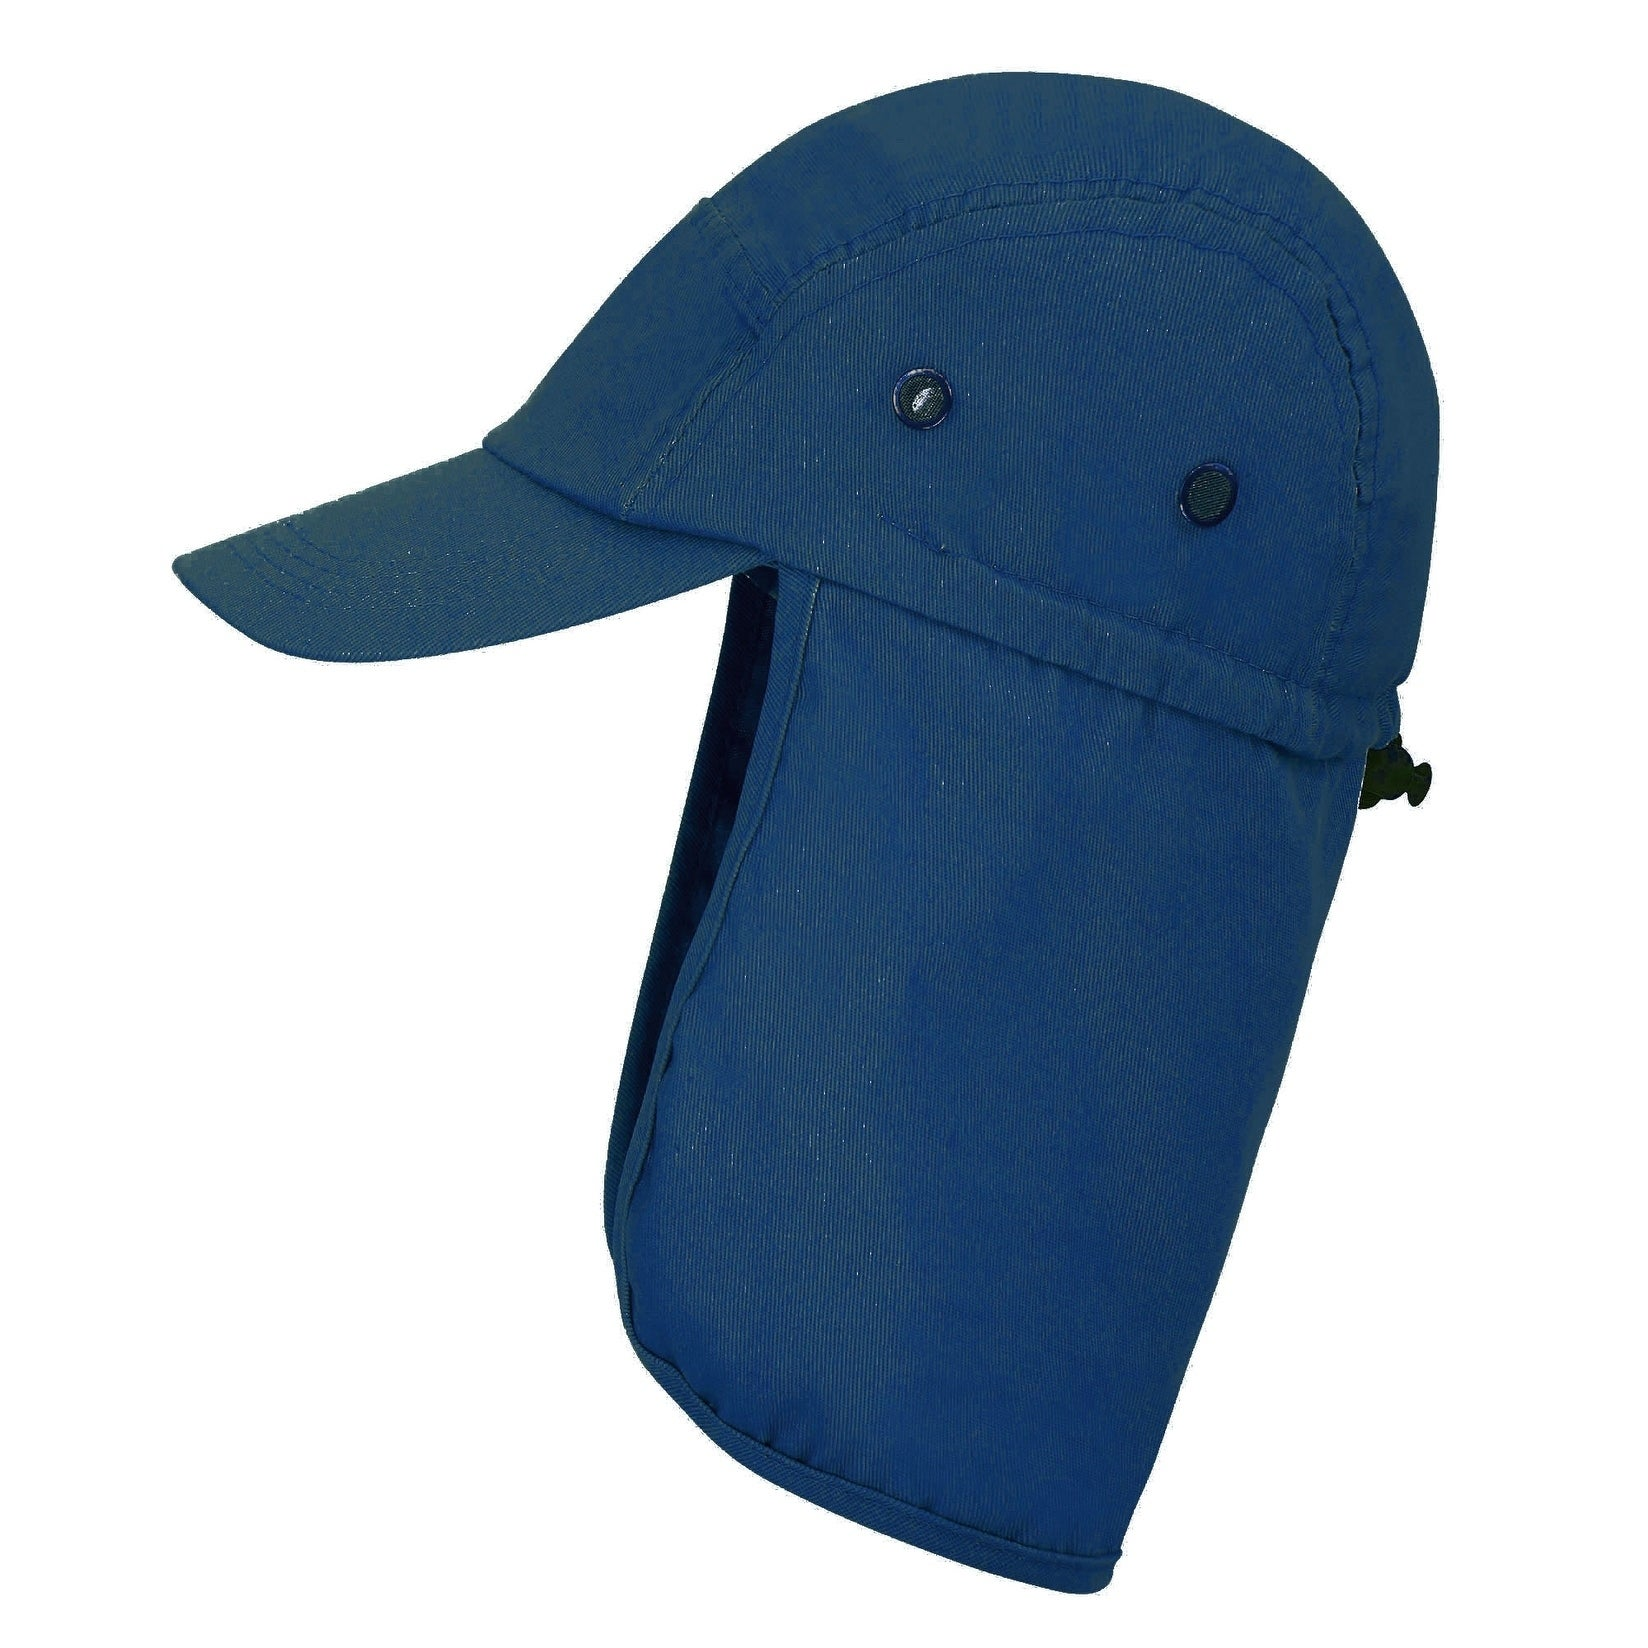 b554f5d17 Shop Safari Hat Sun Protection Outdoors Neck Flap Cap Denim Black - Free  Shipping On Orders Over $45 - Overstock - 19996305